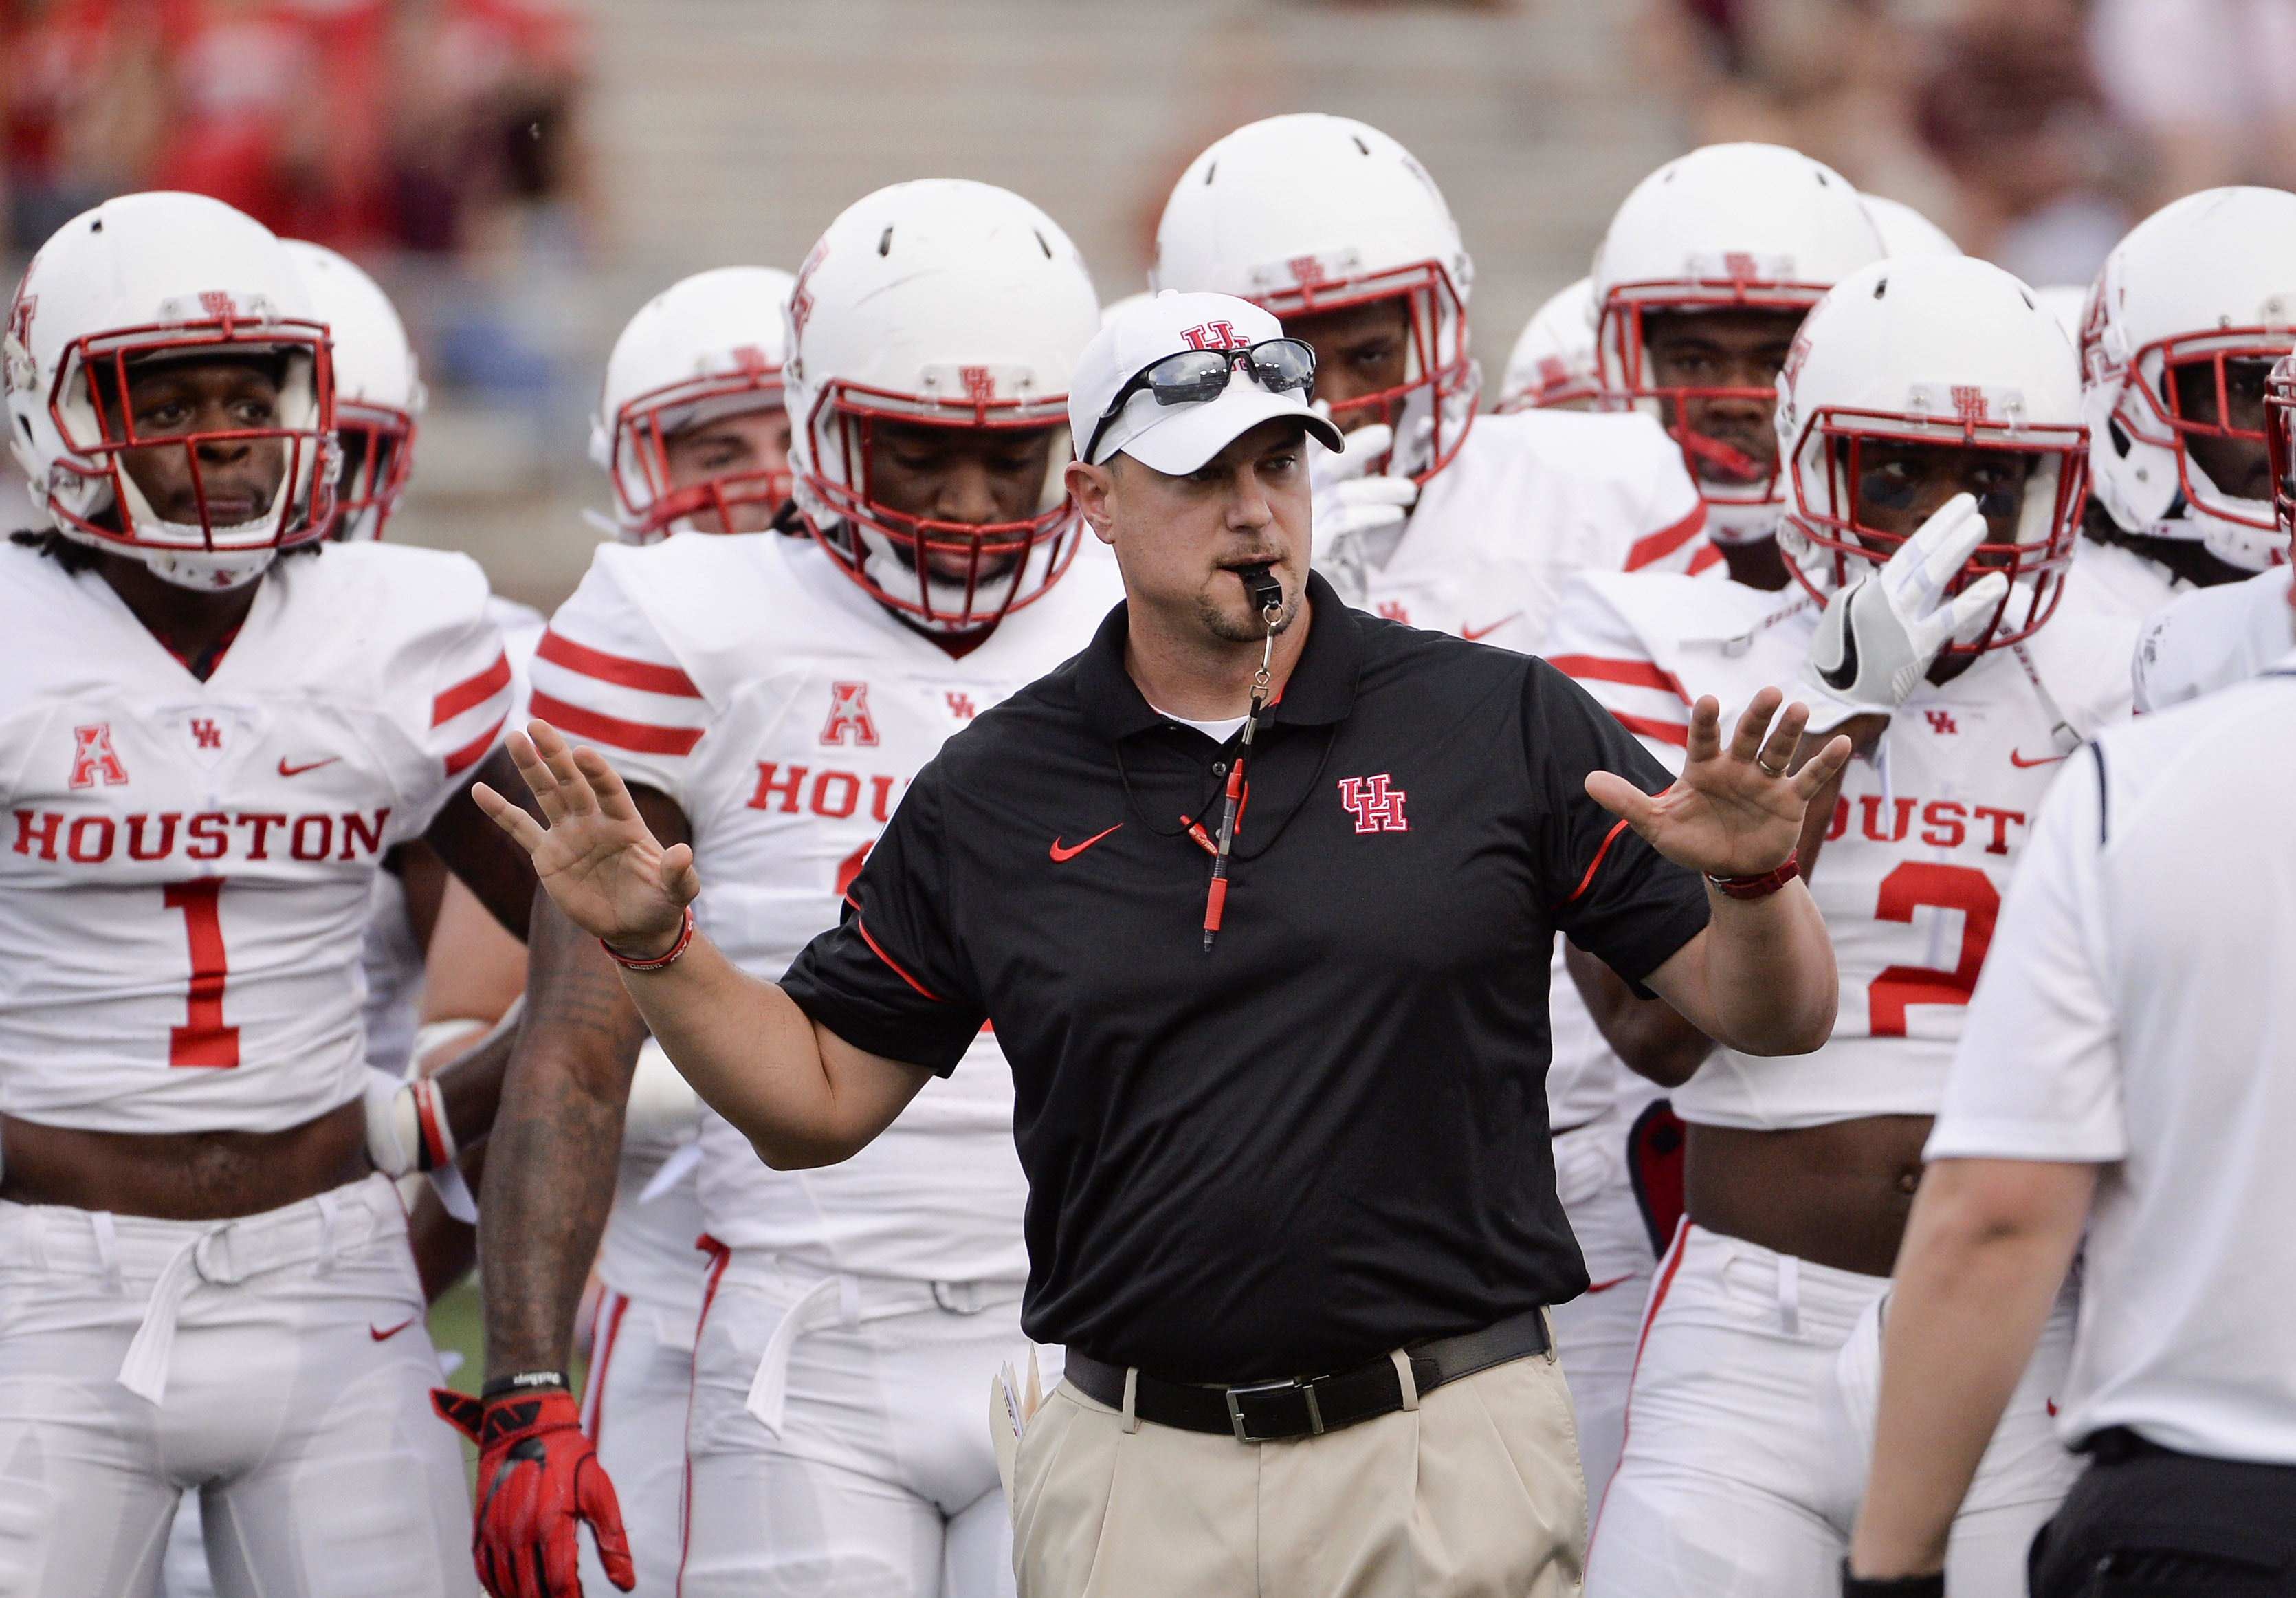 Houston head coach Tom Herman runs drills with his team before an NCAA college football game against Texas State, Saturday, Sept. 24, 2016, in San Marcos, Texas. (AP Photo/Darren Abate)